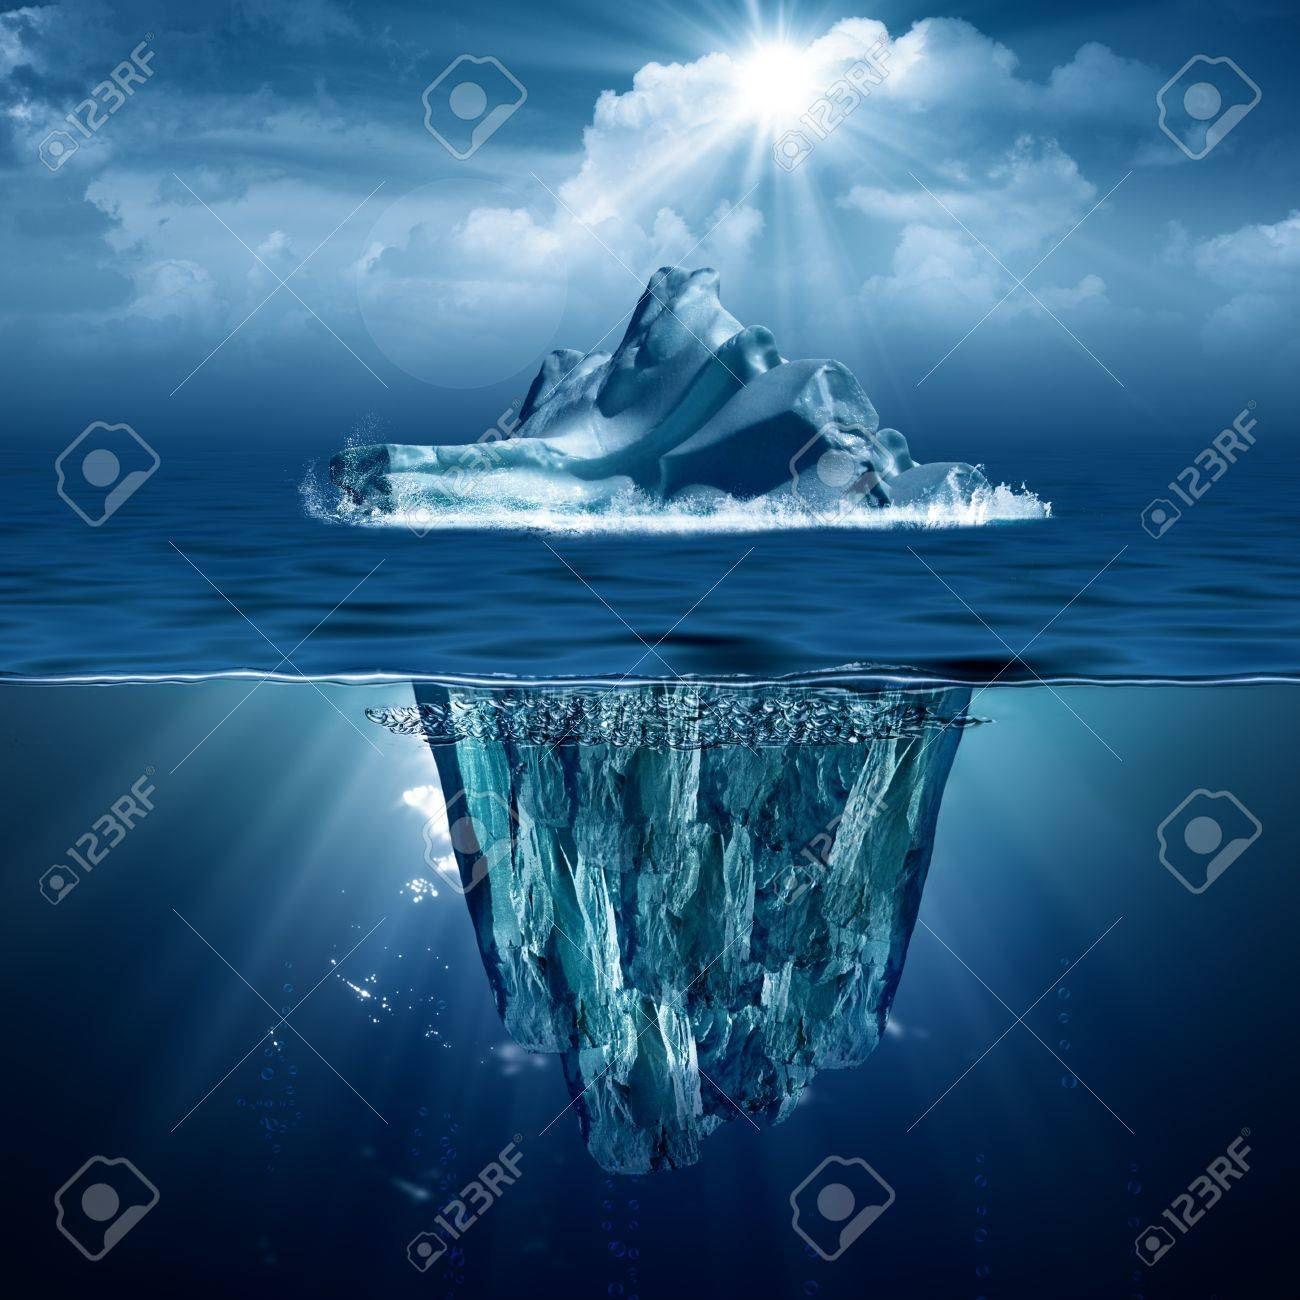 Iceberg. Abstract eco backgrounds for your design - 19023515